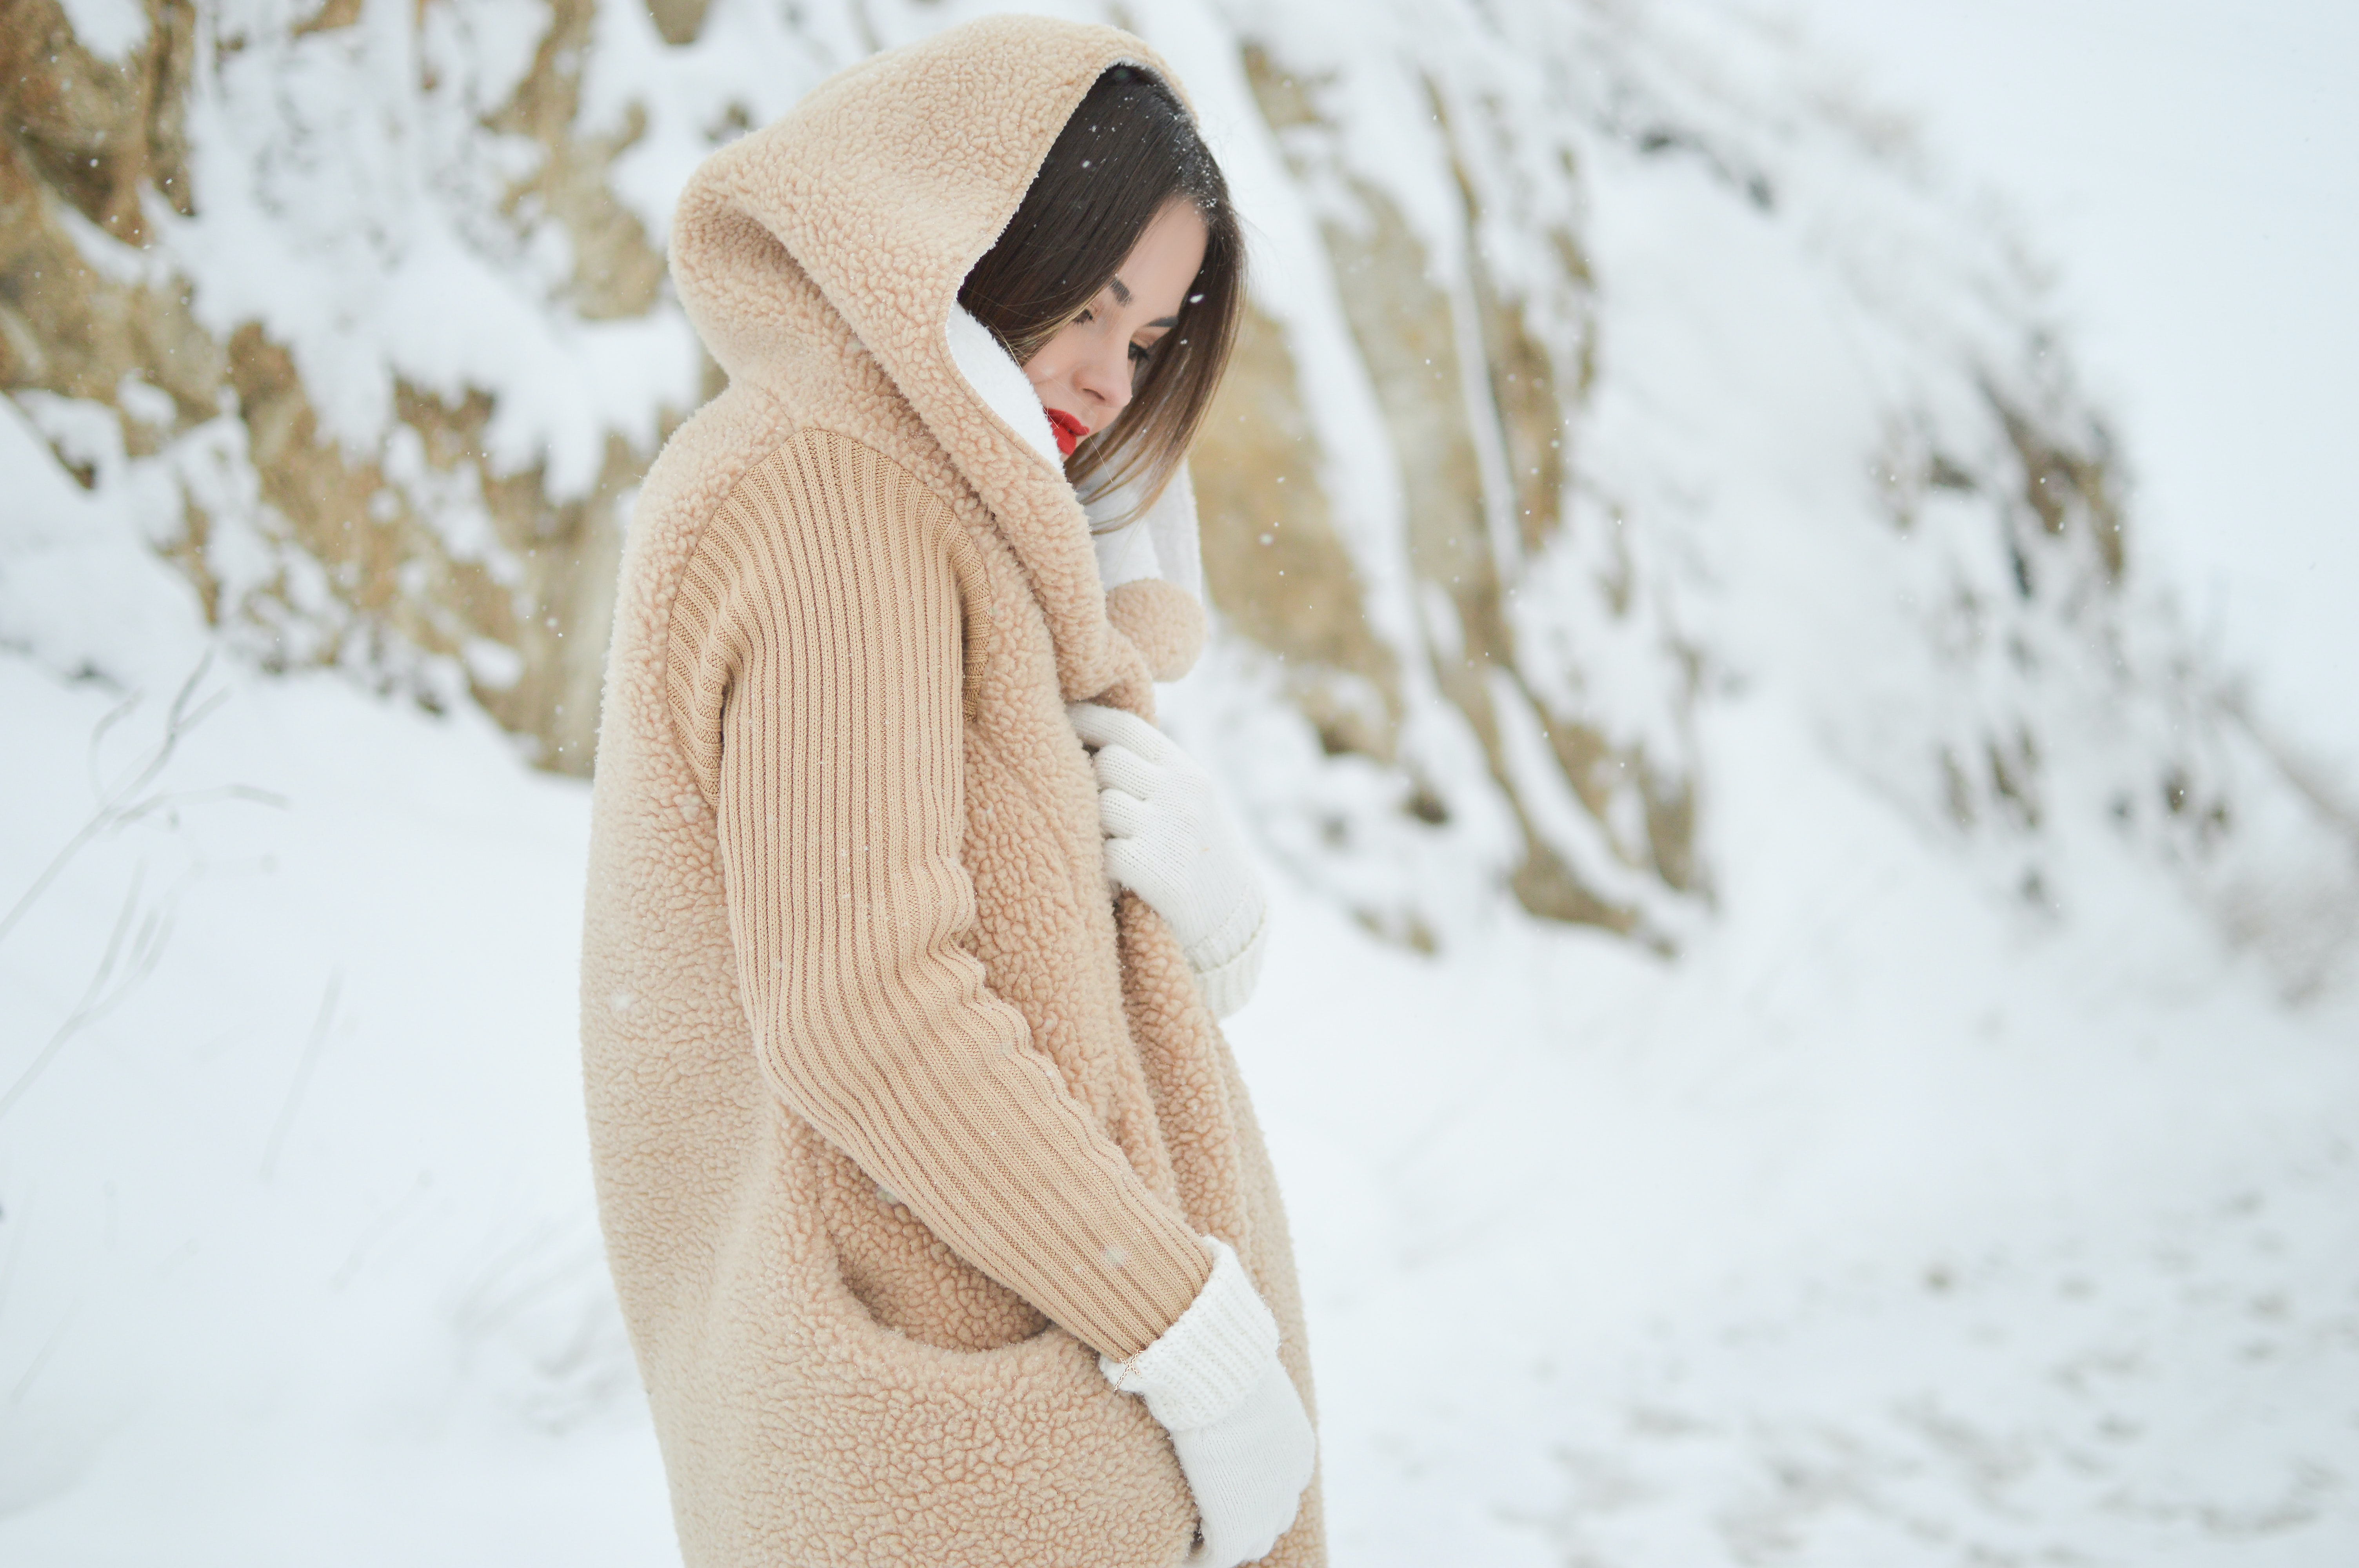 A woman in a furry hooded sweater wearing gloves in the snow in Florina